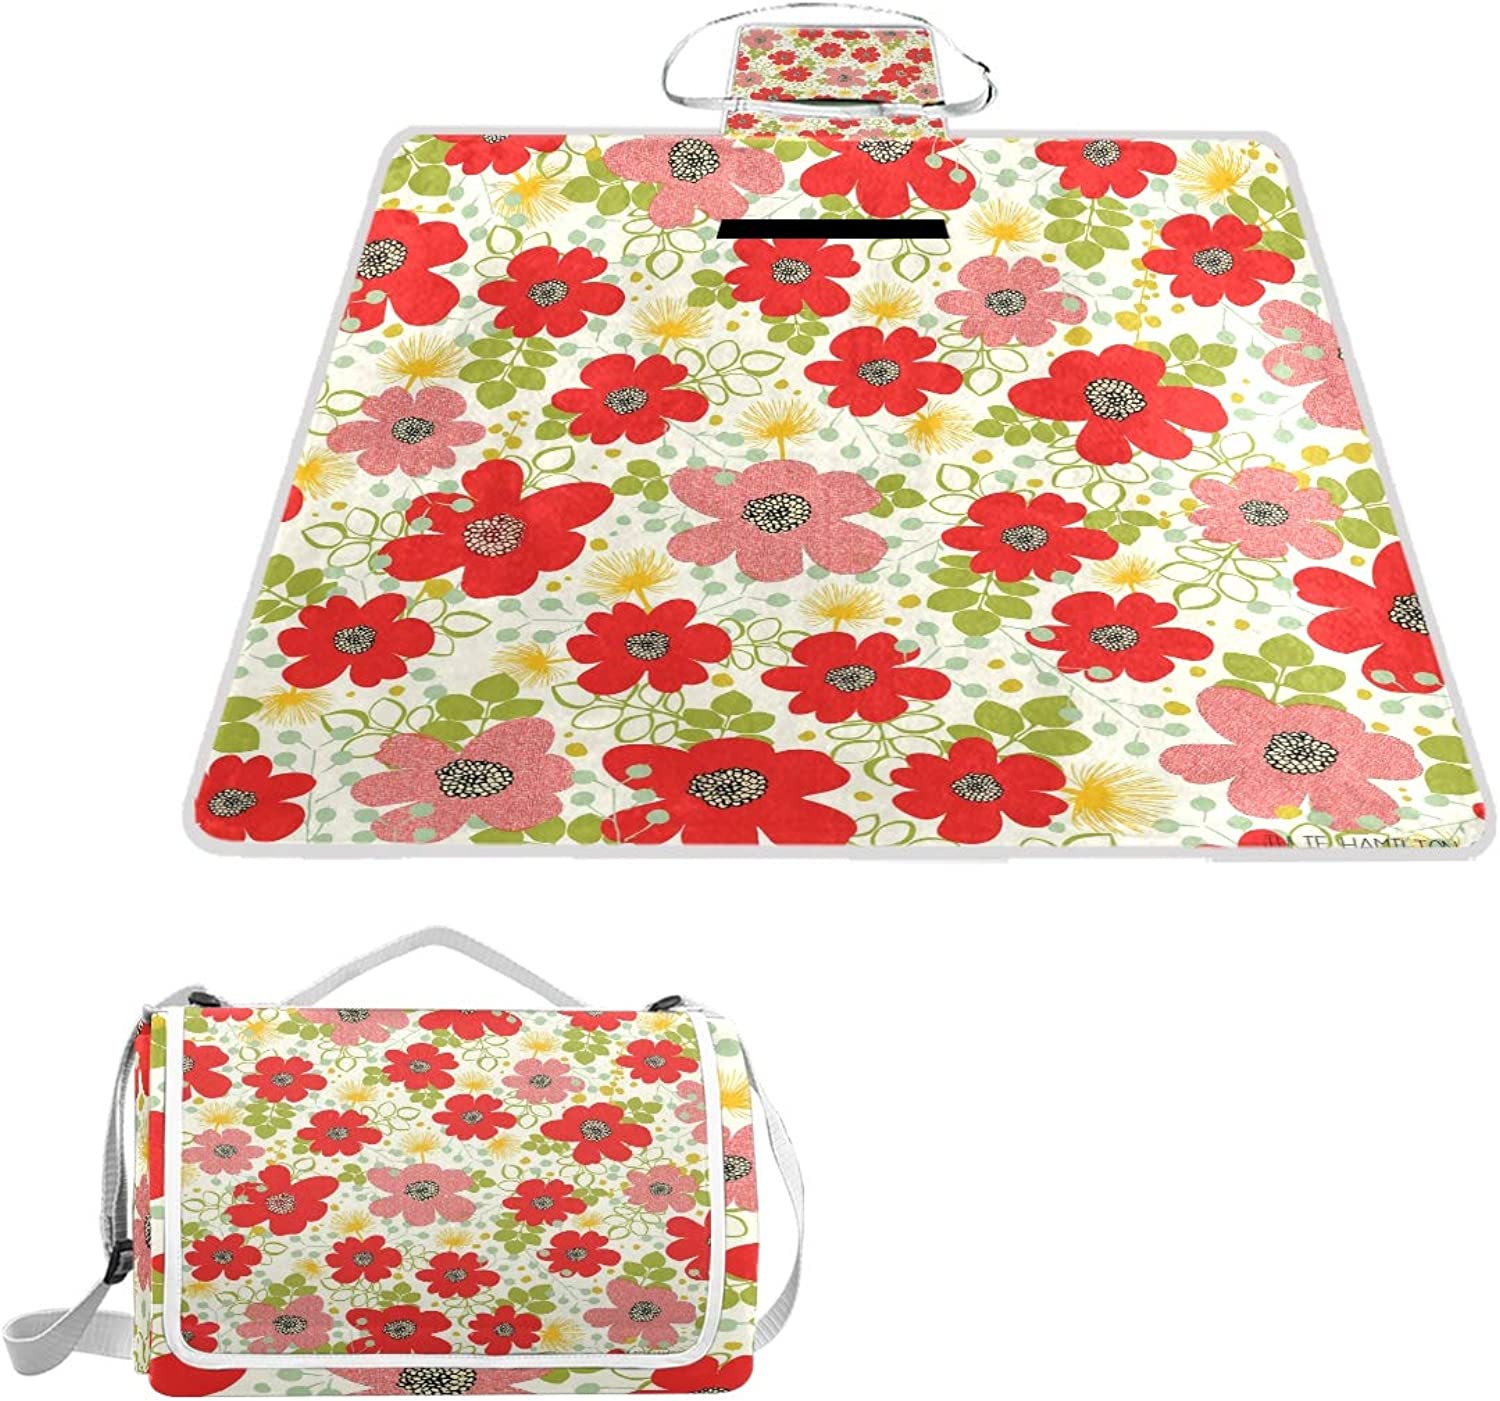 MASSIKOA Flowers Picnic Blanket Waterproof Outdoor Blanket Foldable Picnic Handy Mat Tote for Beach Camping Hiking